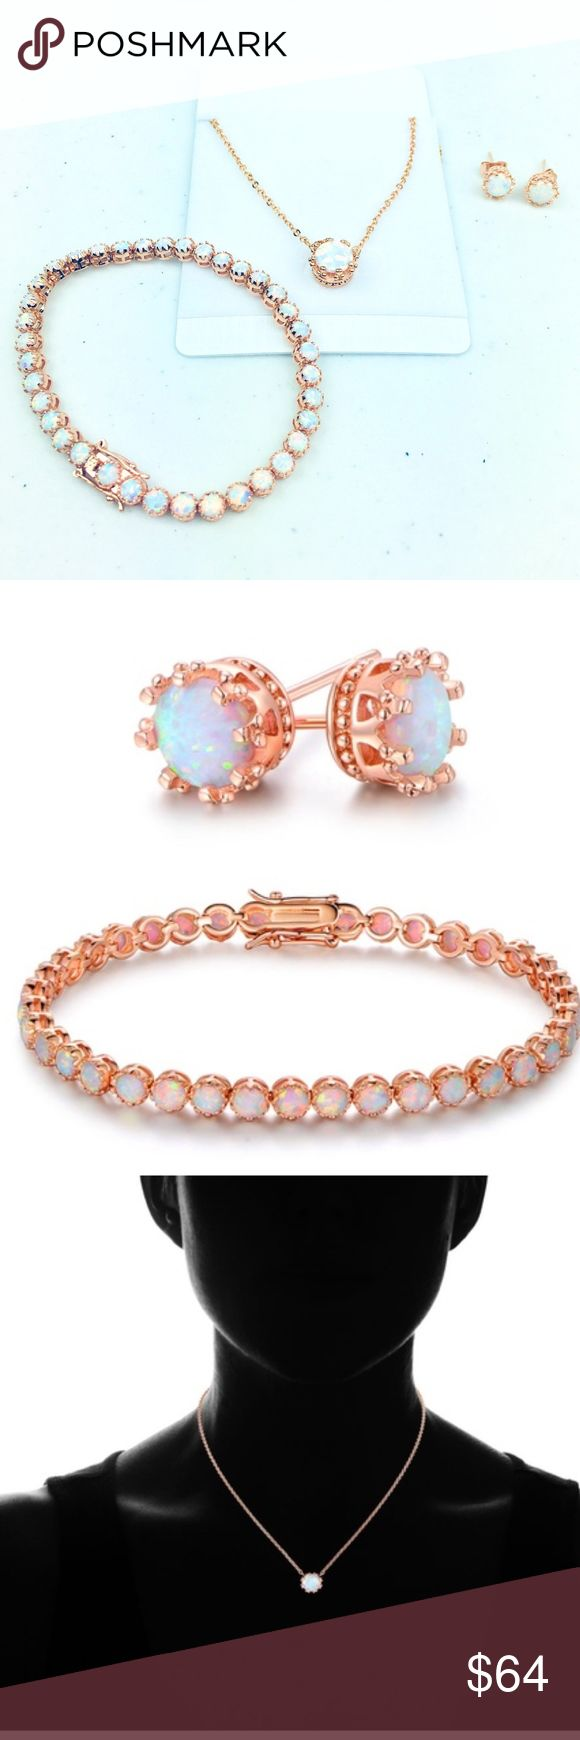 """Fire Opal Crown Jewelry Set 18K Rose Gold Plating Peermont 22.00 CTTW Lab-Created Fire Opal Crown Jewelry Set in 18K Rose Gold Plating Stone type: fire opal Stone treatment: lab-created Stone shape: round Birthstone of the month: October Total number of stones: 105 Total carat weight: 22 CTTW Metal: brass Plating: 18K rose gold Chain type: cable link Clasp type; Earrings: clip back Bracelet: open box with safety latches Necklace: lobster Product dimensions; Earrings: 0.3"""" (L) x 0.3"""" (W)…"""